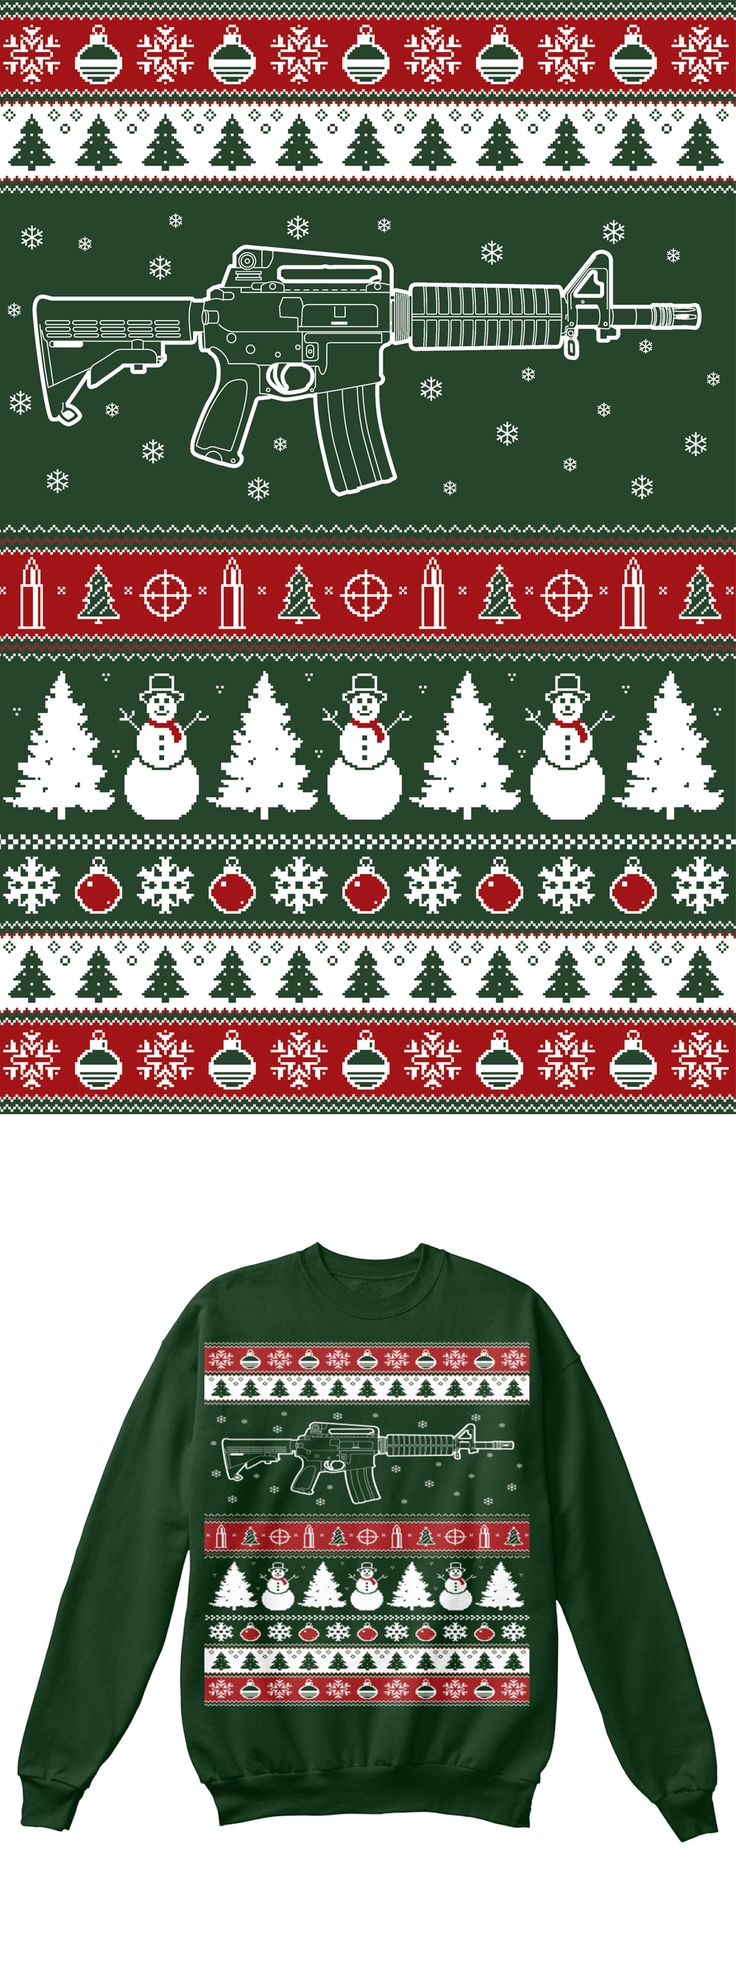 AR15 Christmas Sweatshirt.  Printed on an actual sweater, not a long sleeve shirt this will become your favorite Christmas Sweater!  Click on image to order, comes in two different colors.